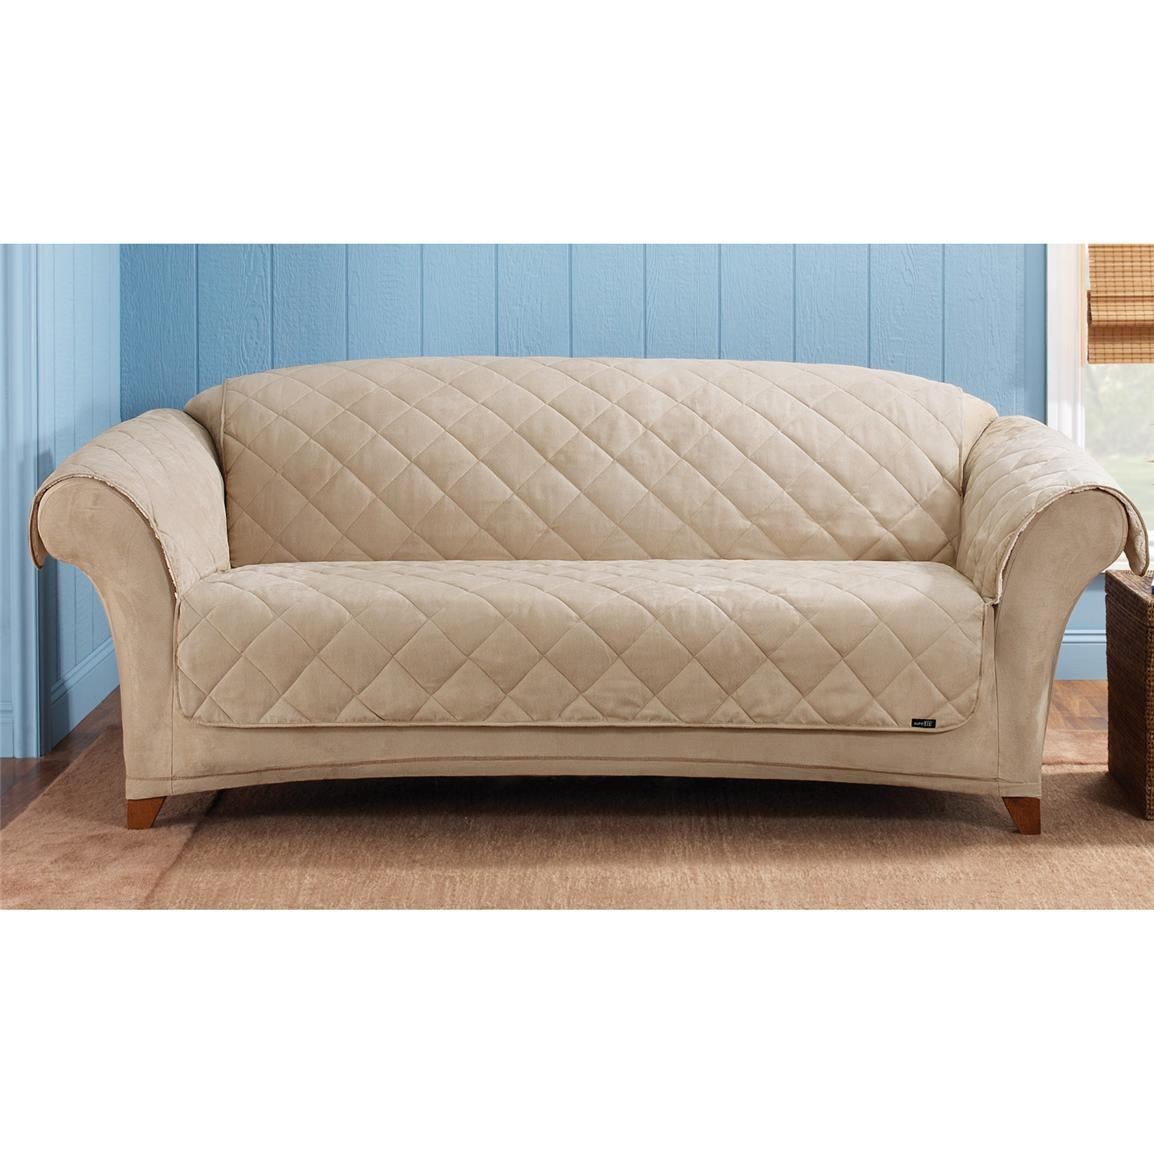 Furniture: Sofa Covers For Recliner Sofas | Sofa Recliner Covers In Covers For Sofas (Image 10 of 20)